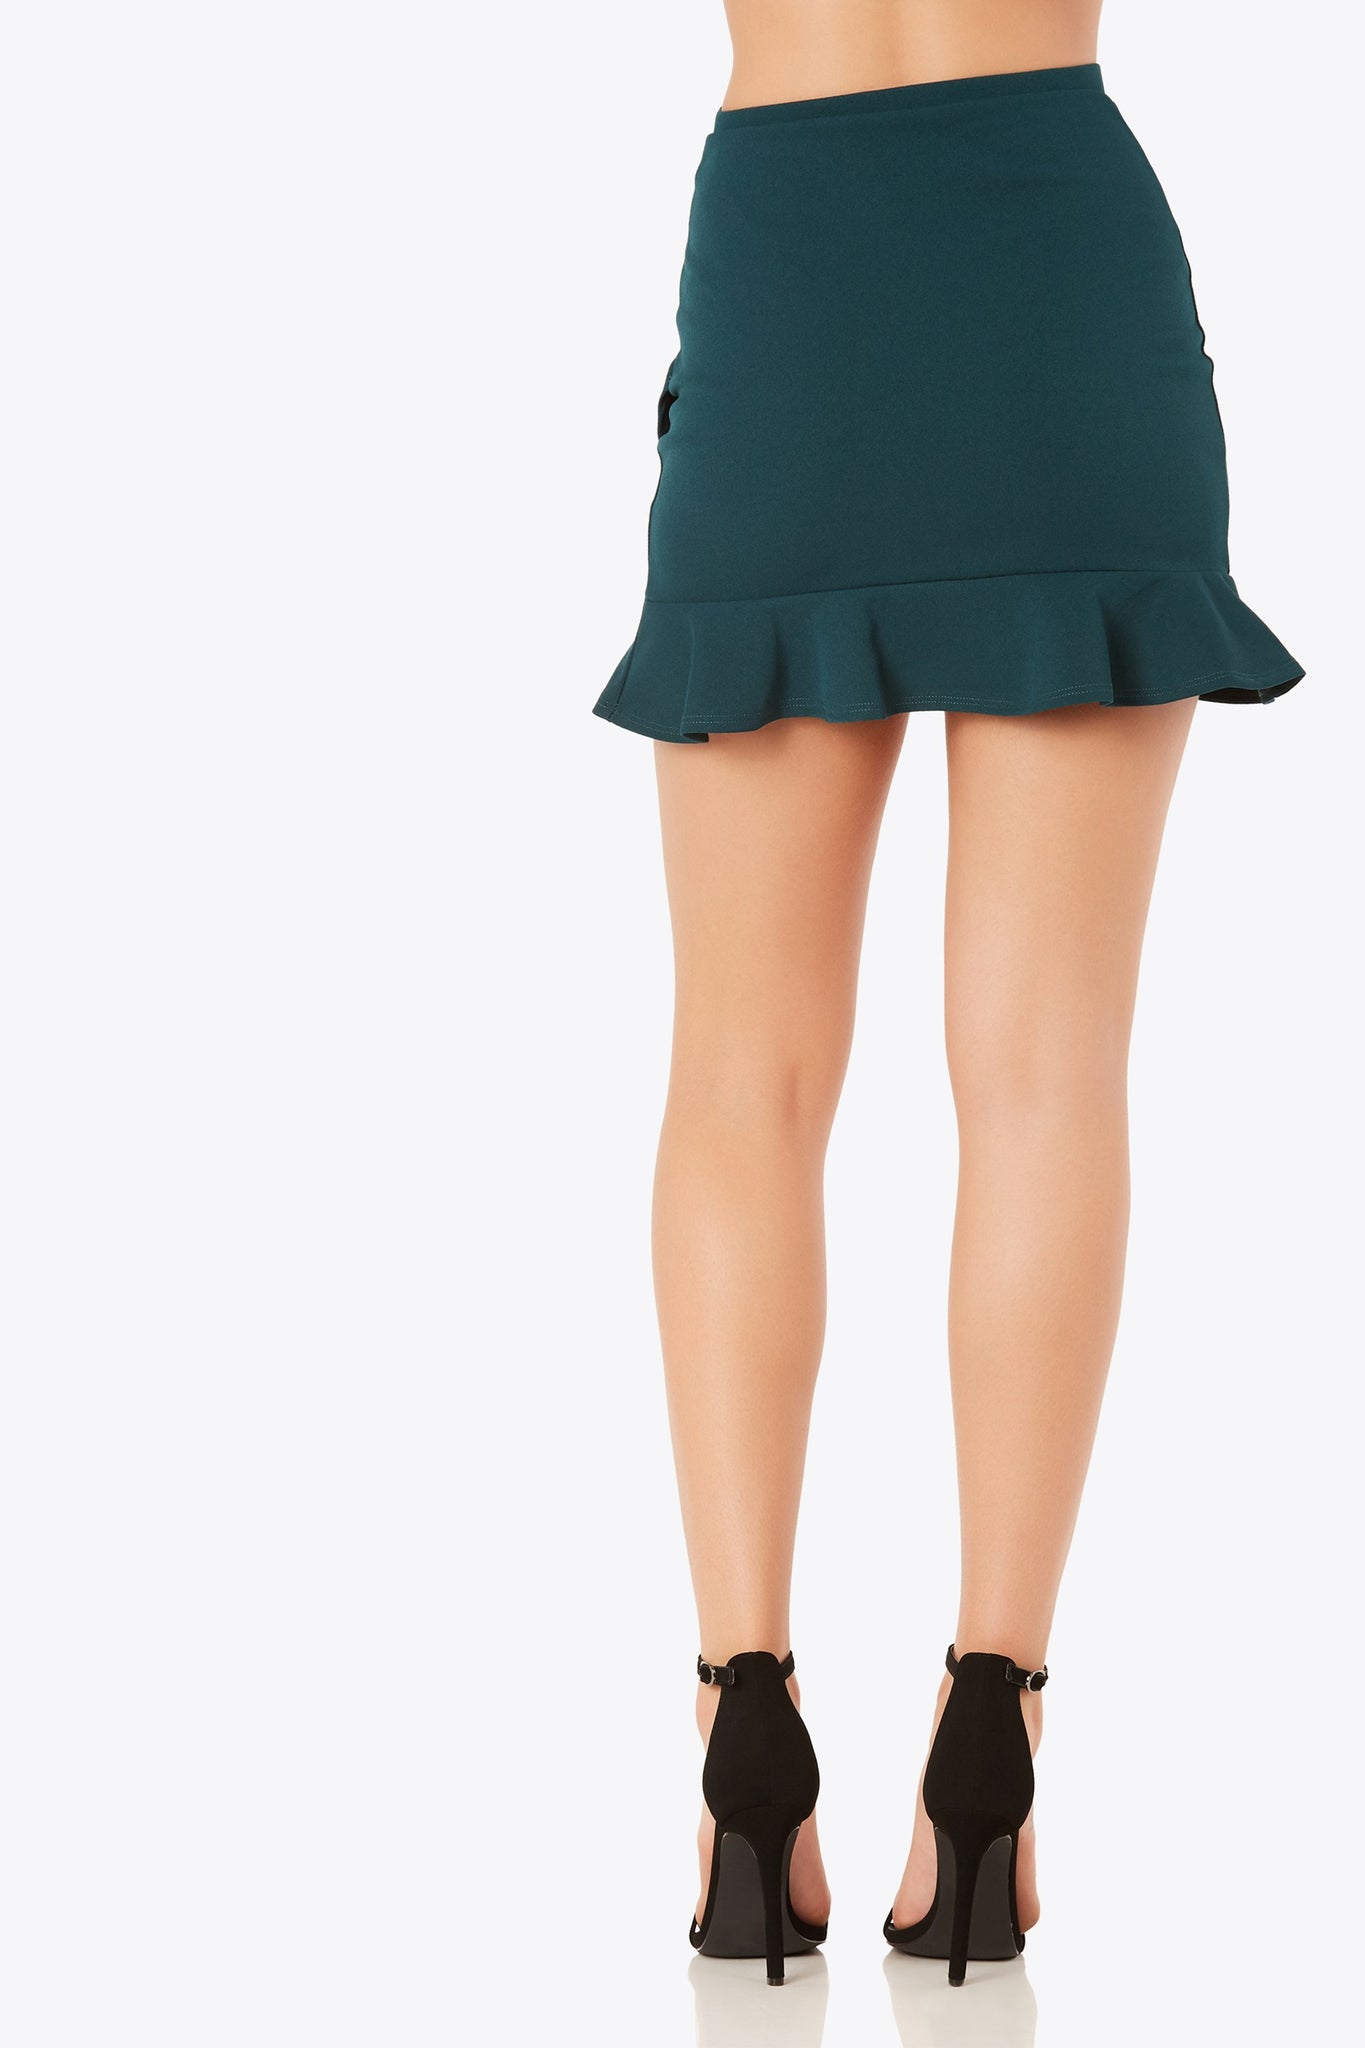 Flirty high rise mini skirt with tulip style design. Ruffle trim detailing with stretchy fit.